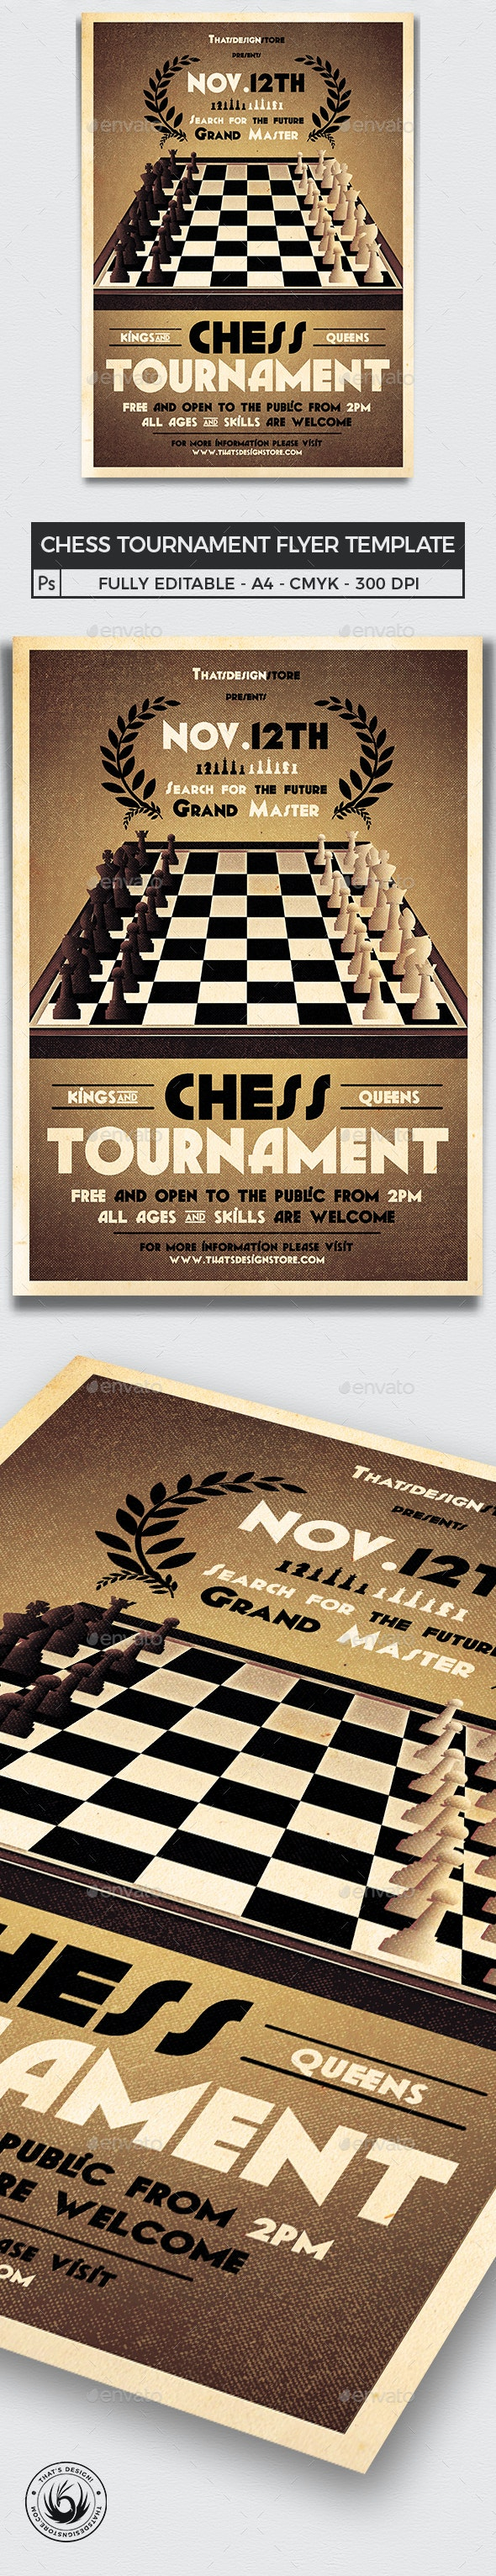 Chess Tournament Flyer Template - Miscellaneous Events